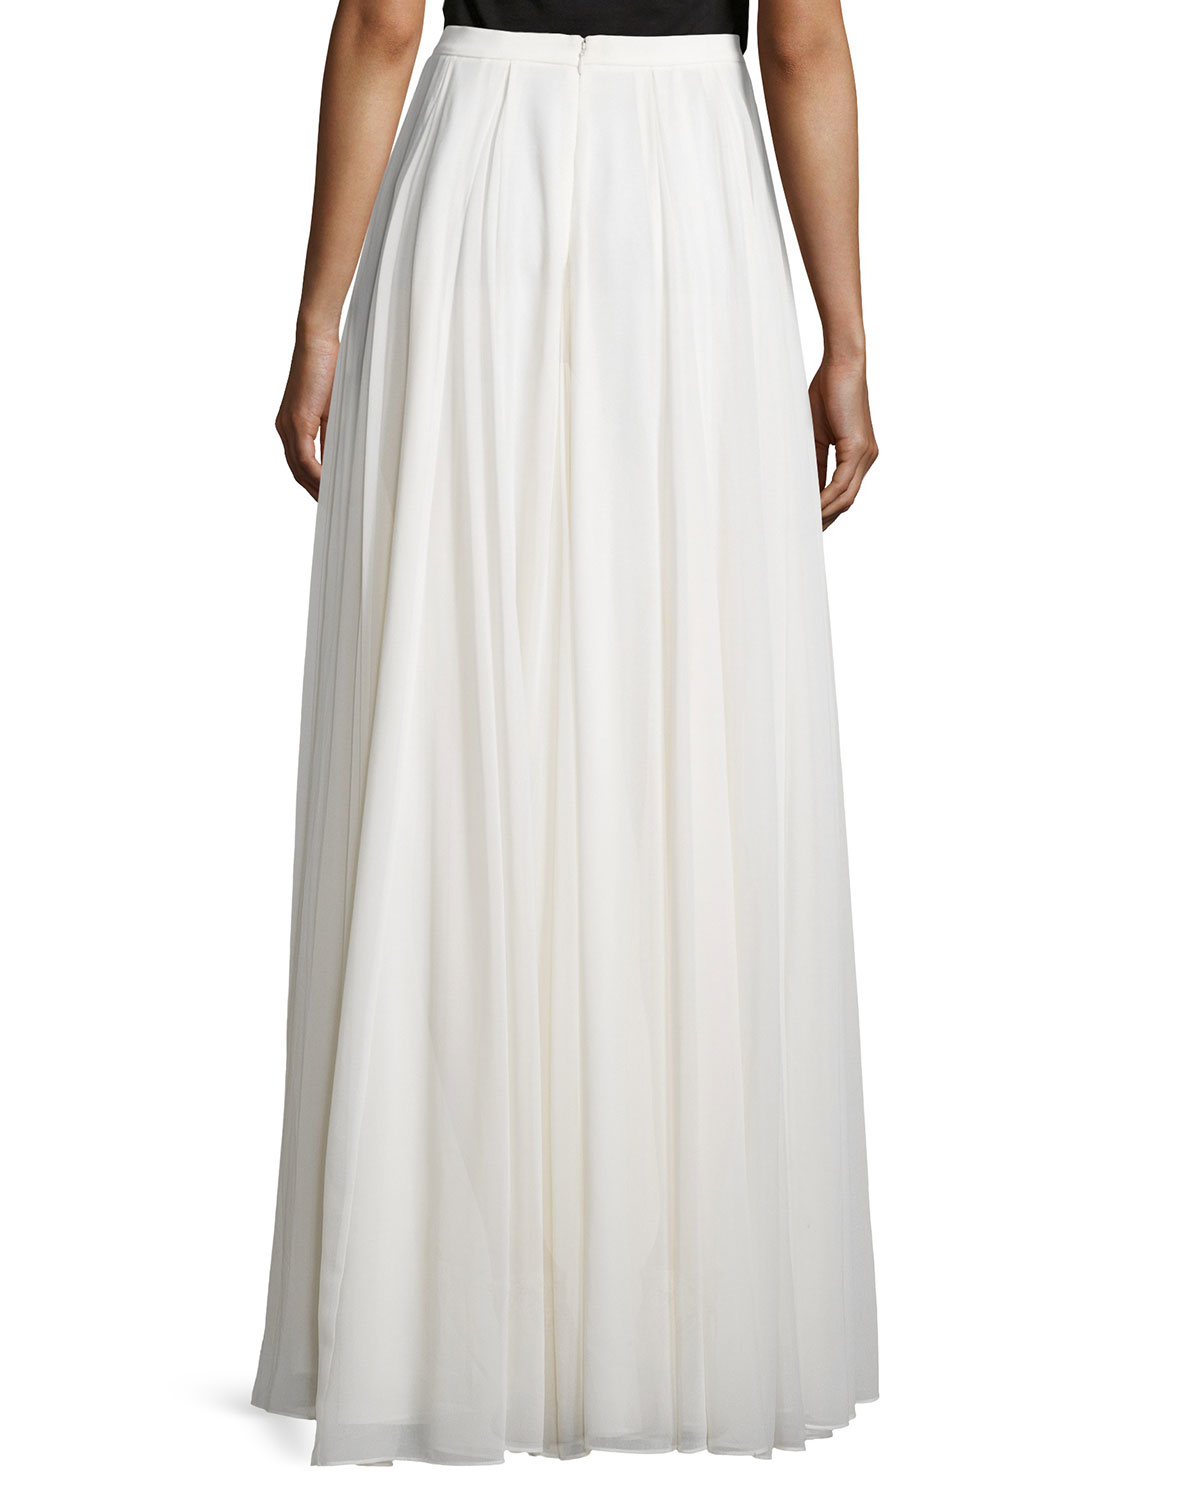 Halston Flowy Pleated Maxi Skirt in White | Lyst